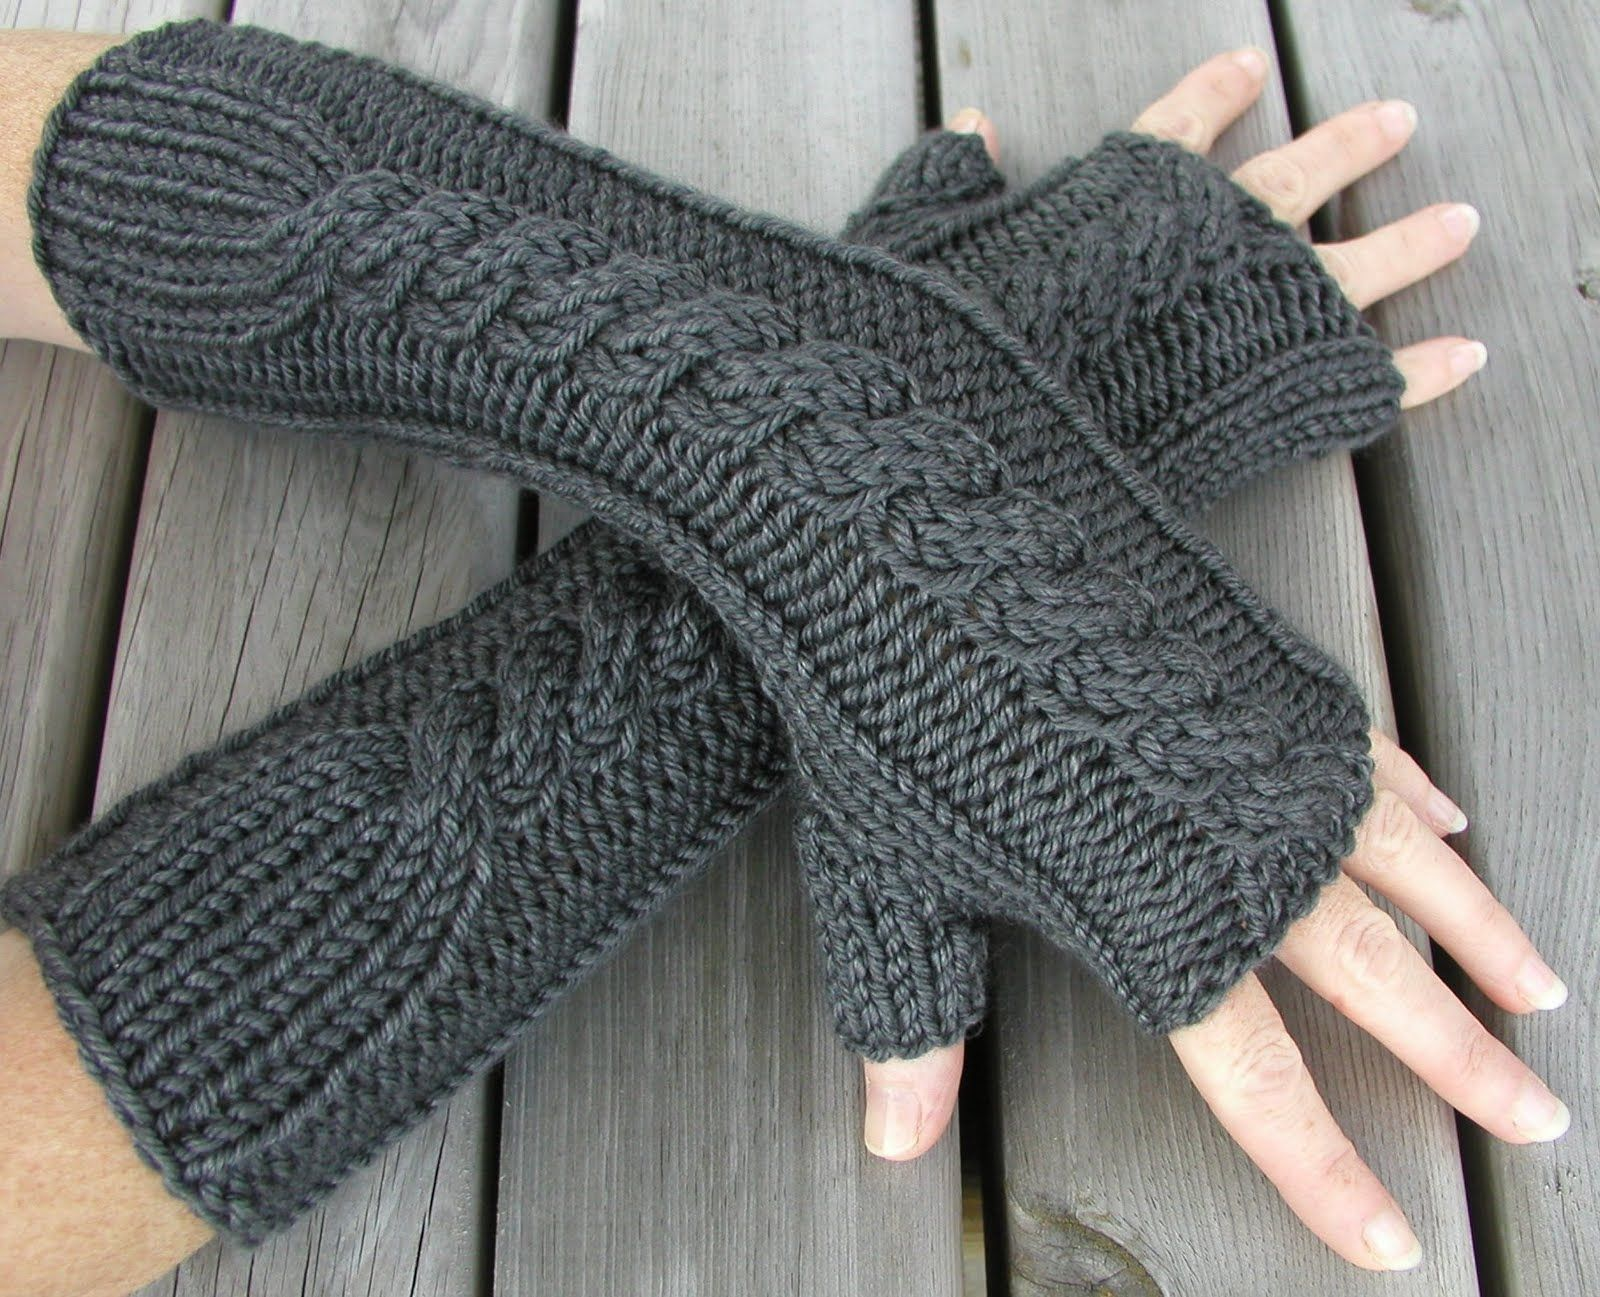 Whits knits ribbed hand warmers knitting crochet sewing crafts hand knitted things patterns pdf knitting pattern fingerless gloves i love this look i might buy the pattern some day jeuxipadfo Choice Image